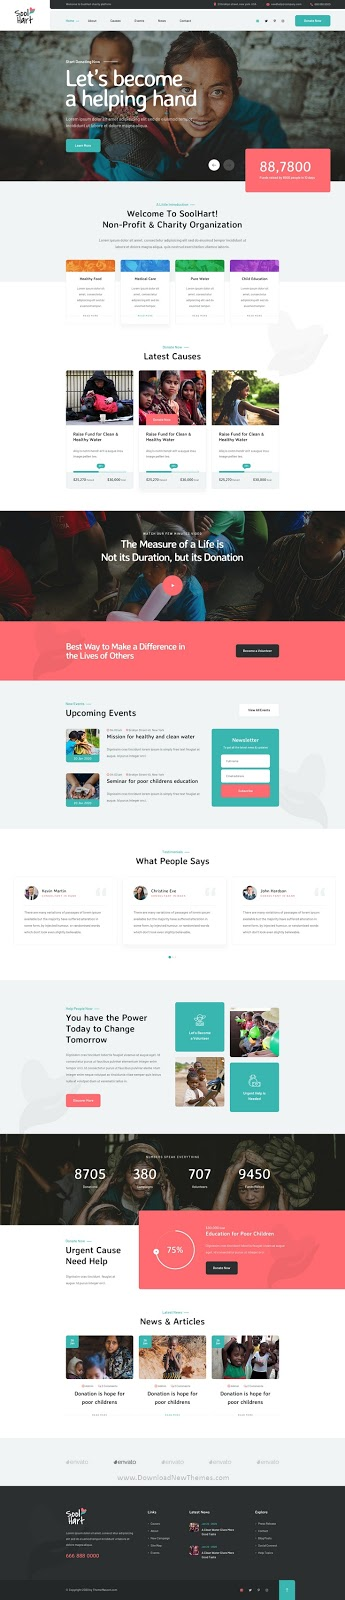 Charity NonProfit Website Template